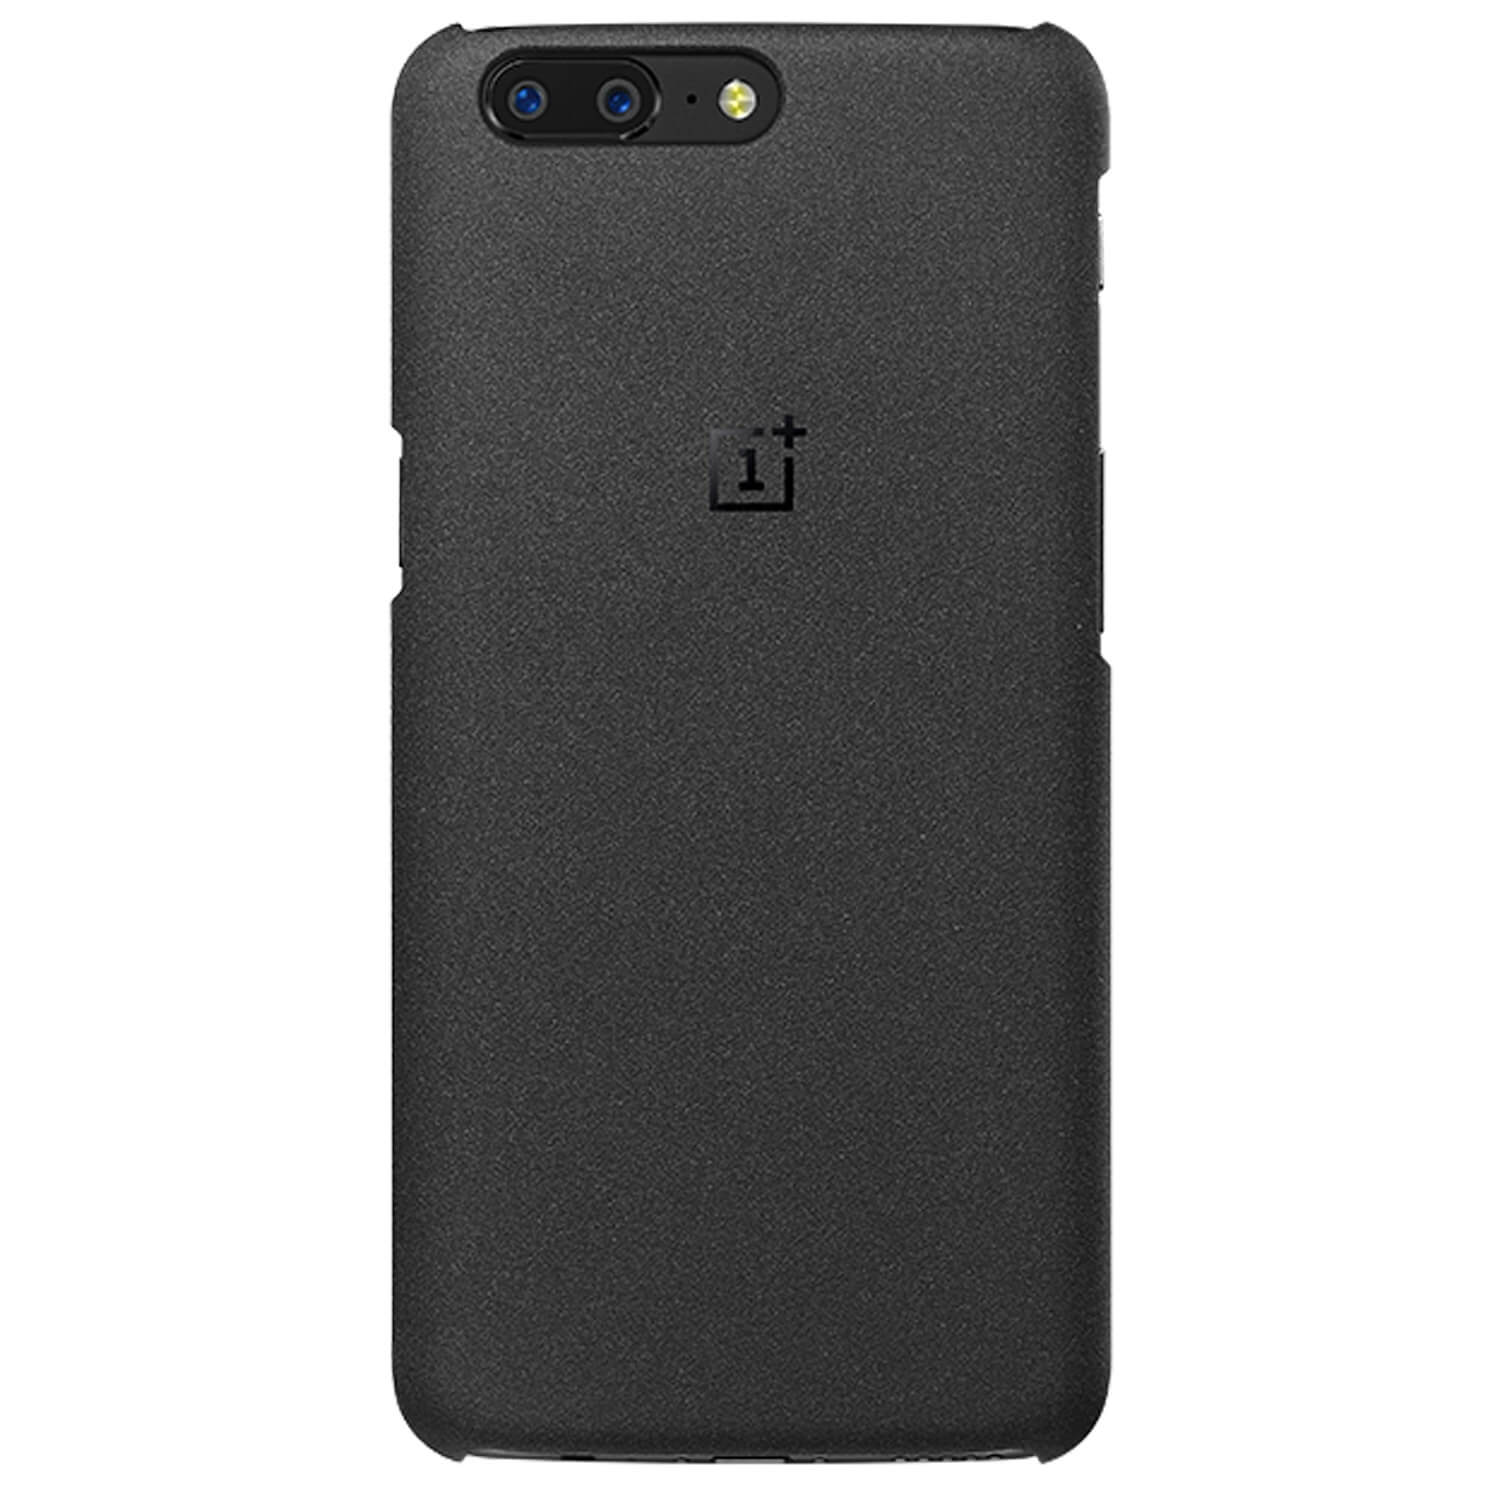 OnePlus Protective Case for OnePlus 5 (sandstone)